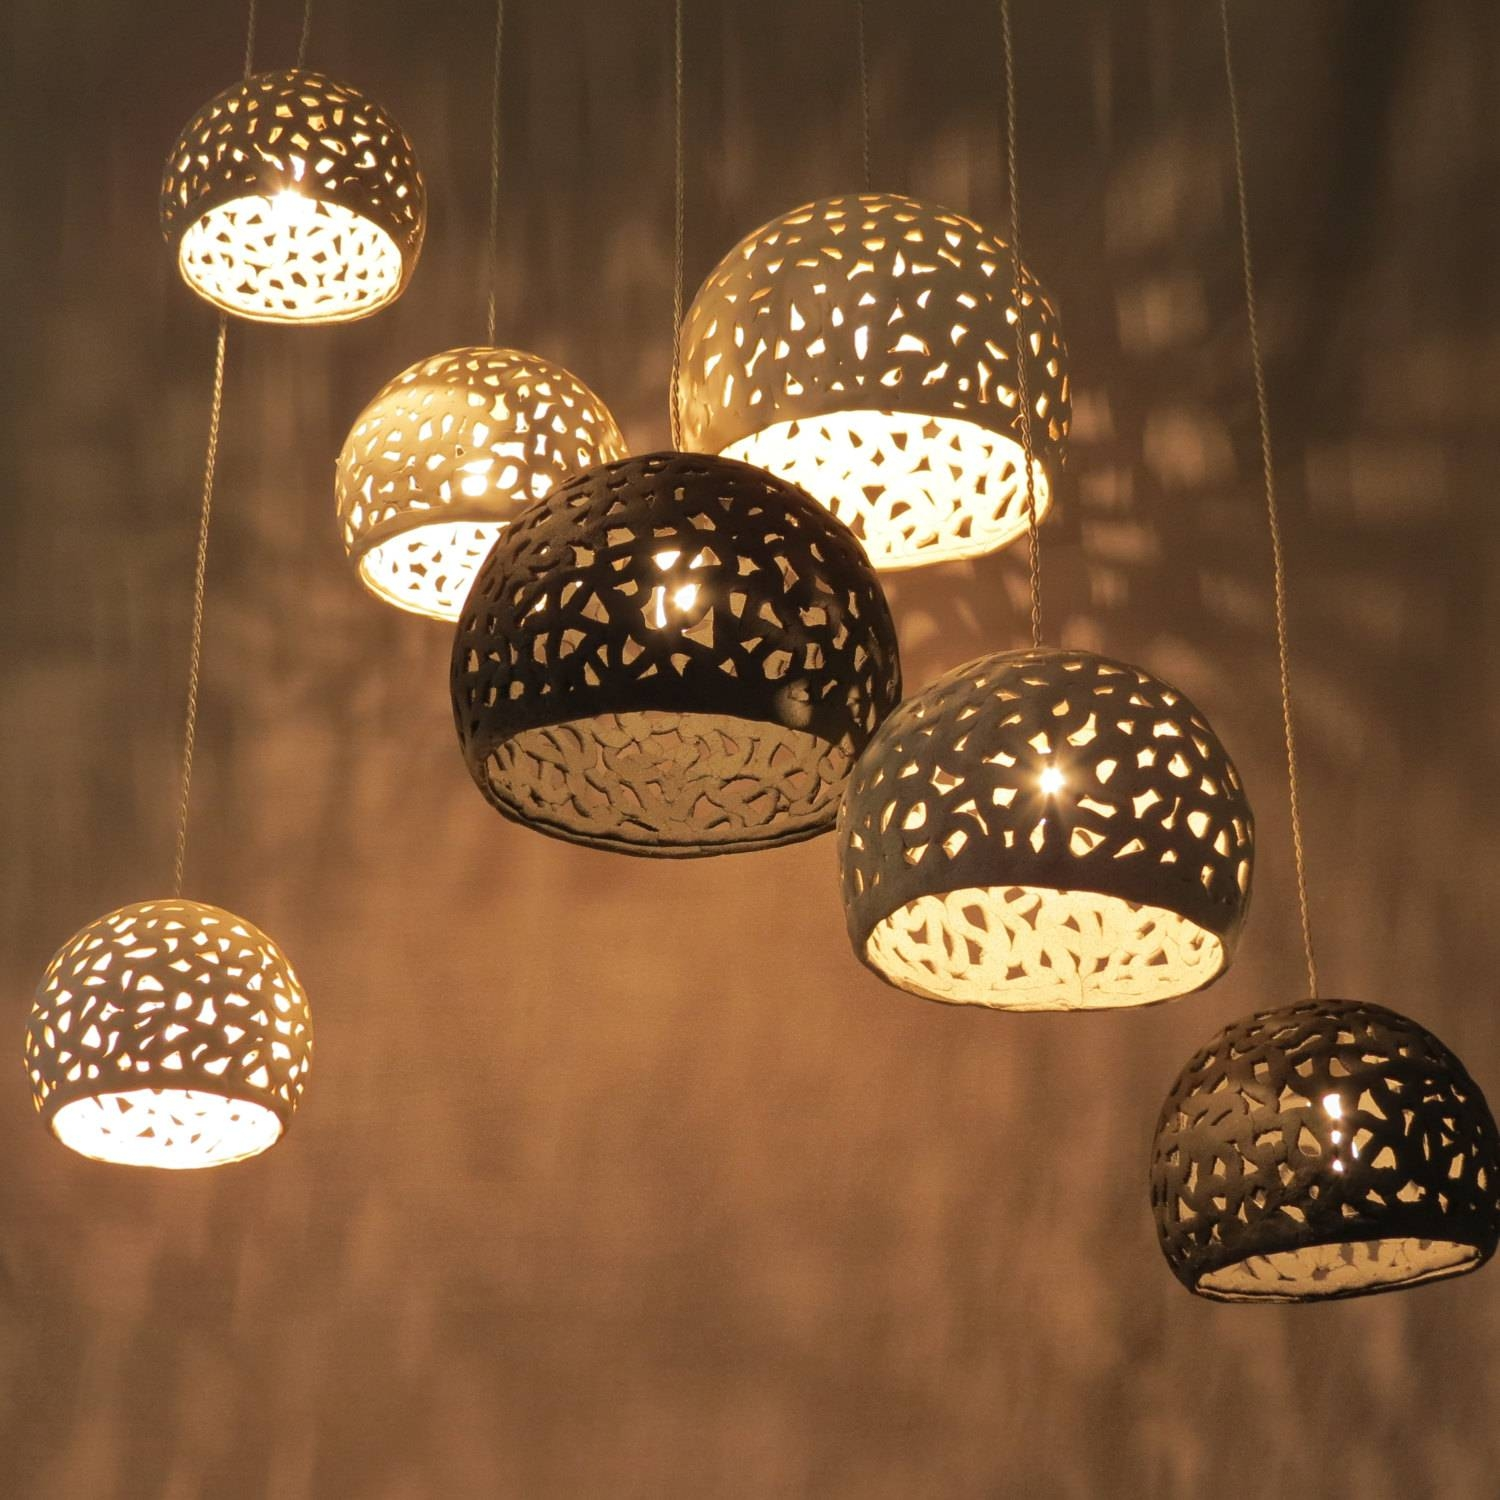 Lamp: Globe Chandeliers | Moroccan Pendant Light | Turkish Lamp regarding Moroccan Punched Metal Pendant Lights (Image 5 of 15)